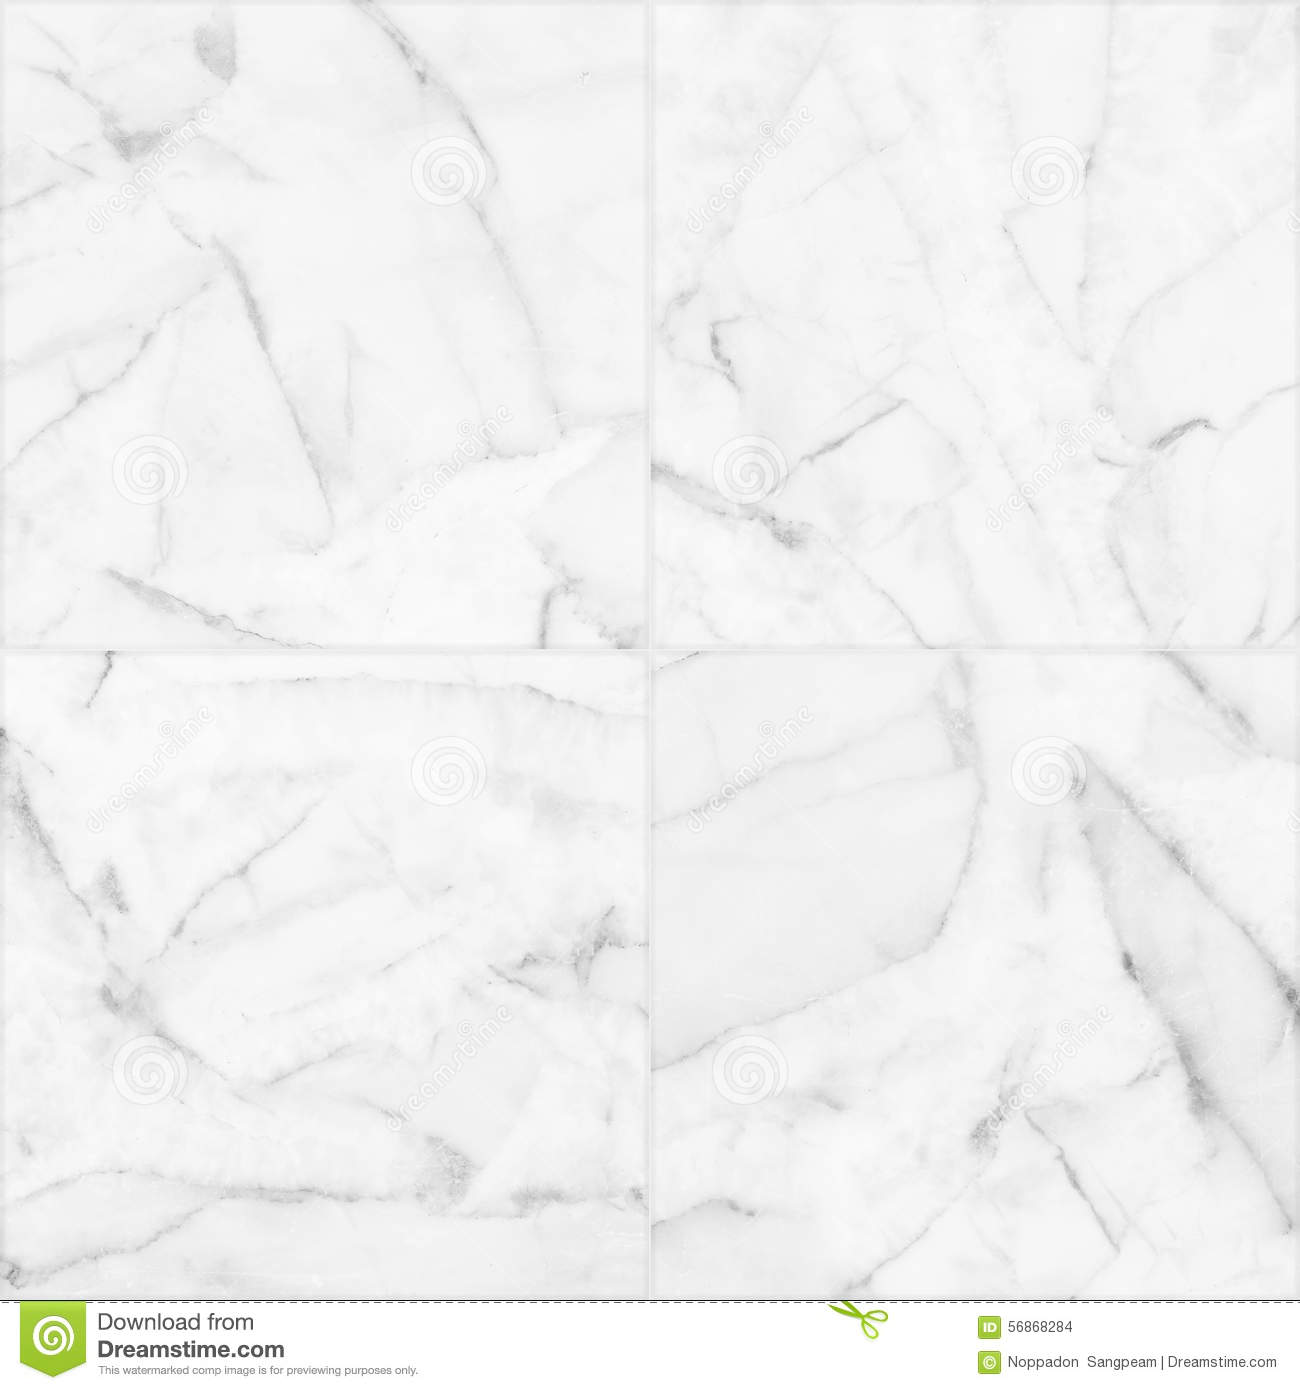 background design detailed flooring marble natural patterned seamless structure texture tiles white